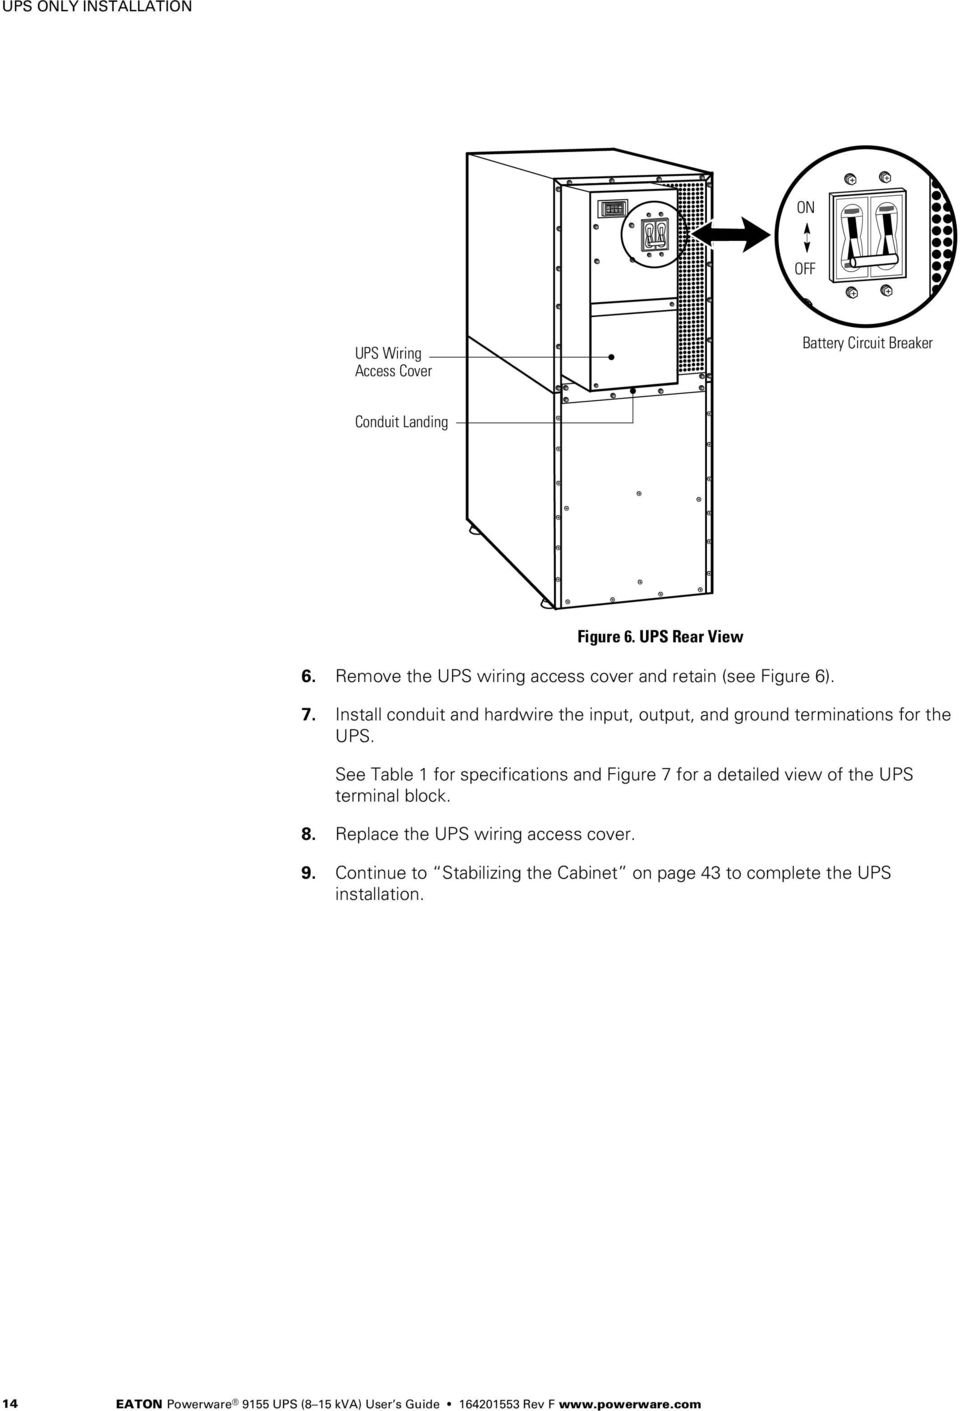 medium resolution of install conduit and hardwire the input output and ground terminations for the ups